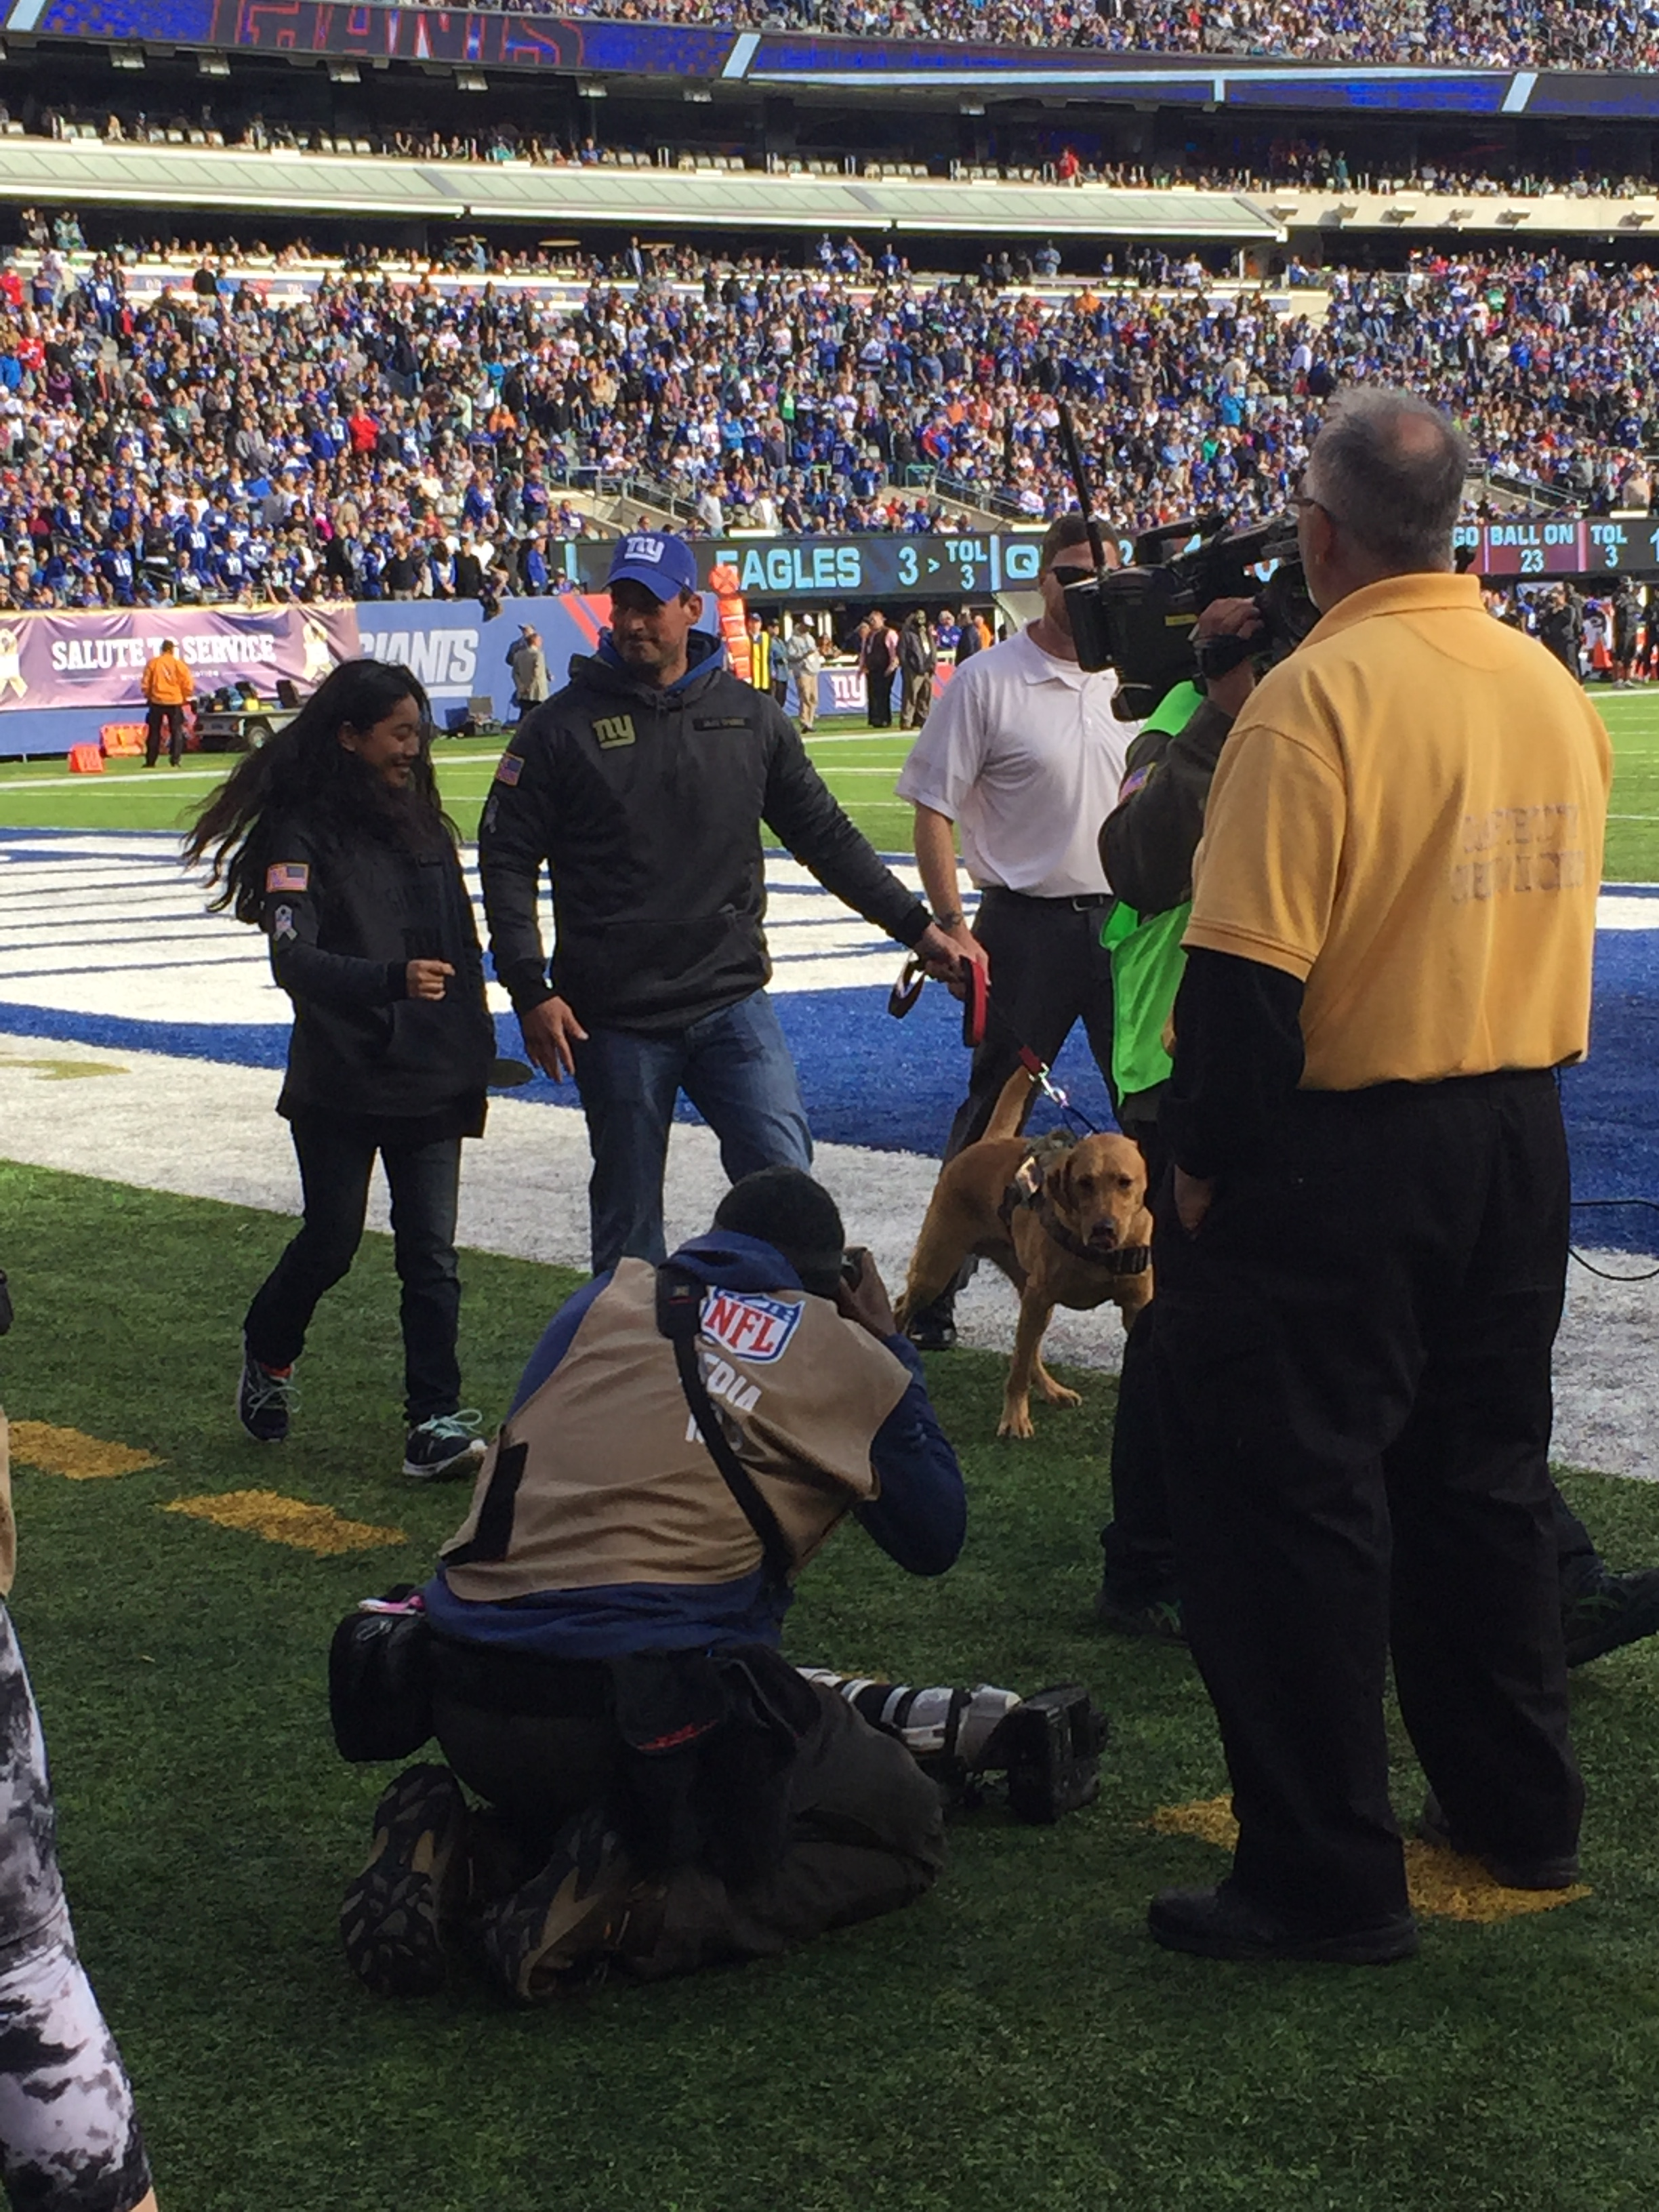 veteran-receiving-service-dog-at-giants-game